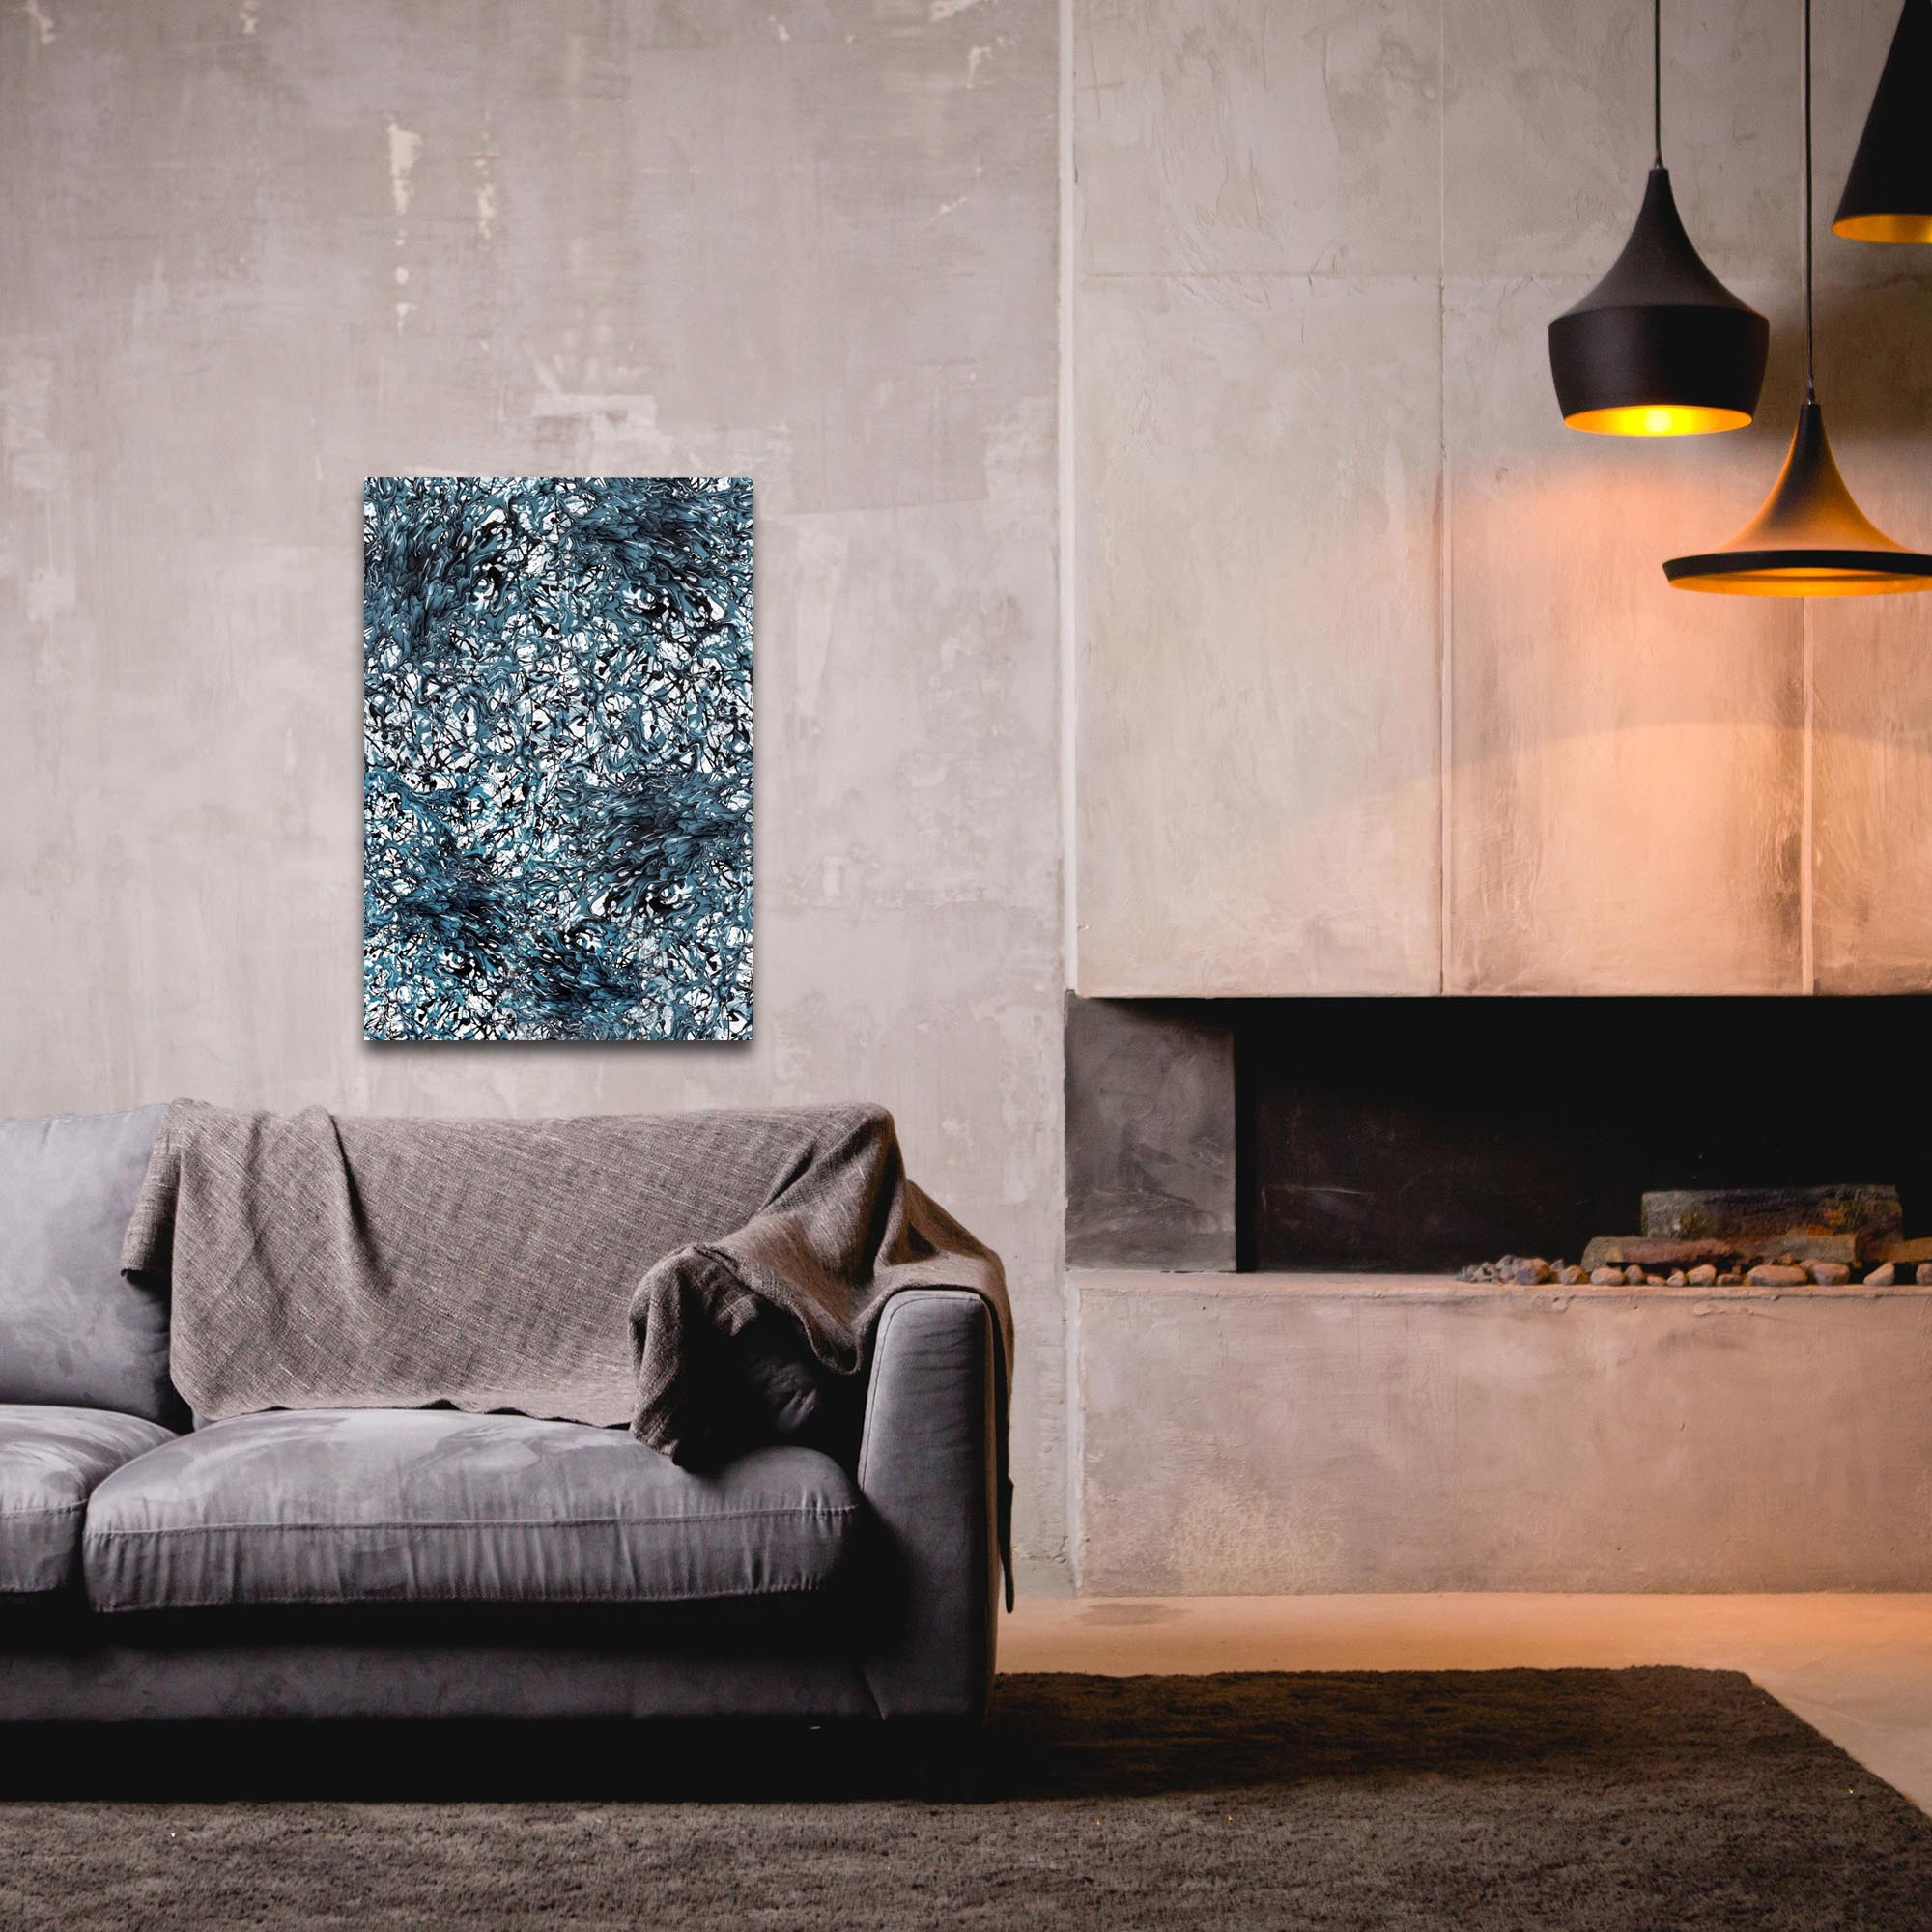 Abstract Wall Art 'Days of Grey 4 Quad' - Colorful Urban Decor on Metal or Plexiglass - Lifestyle View